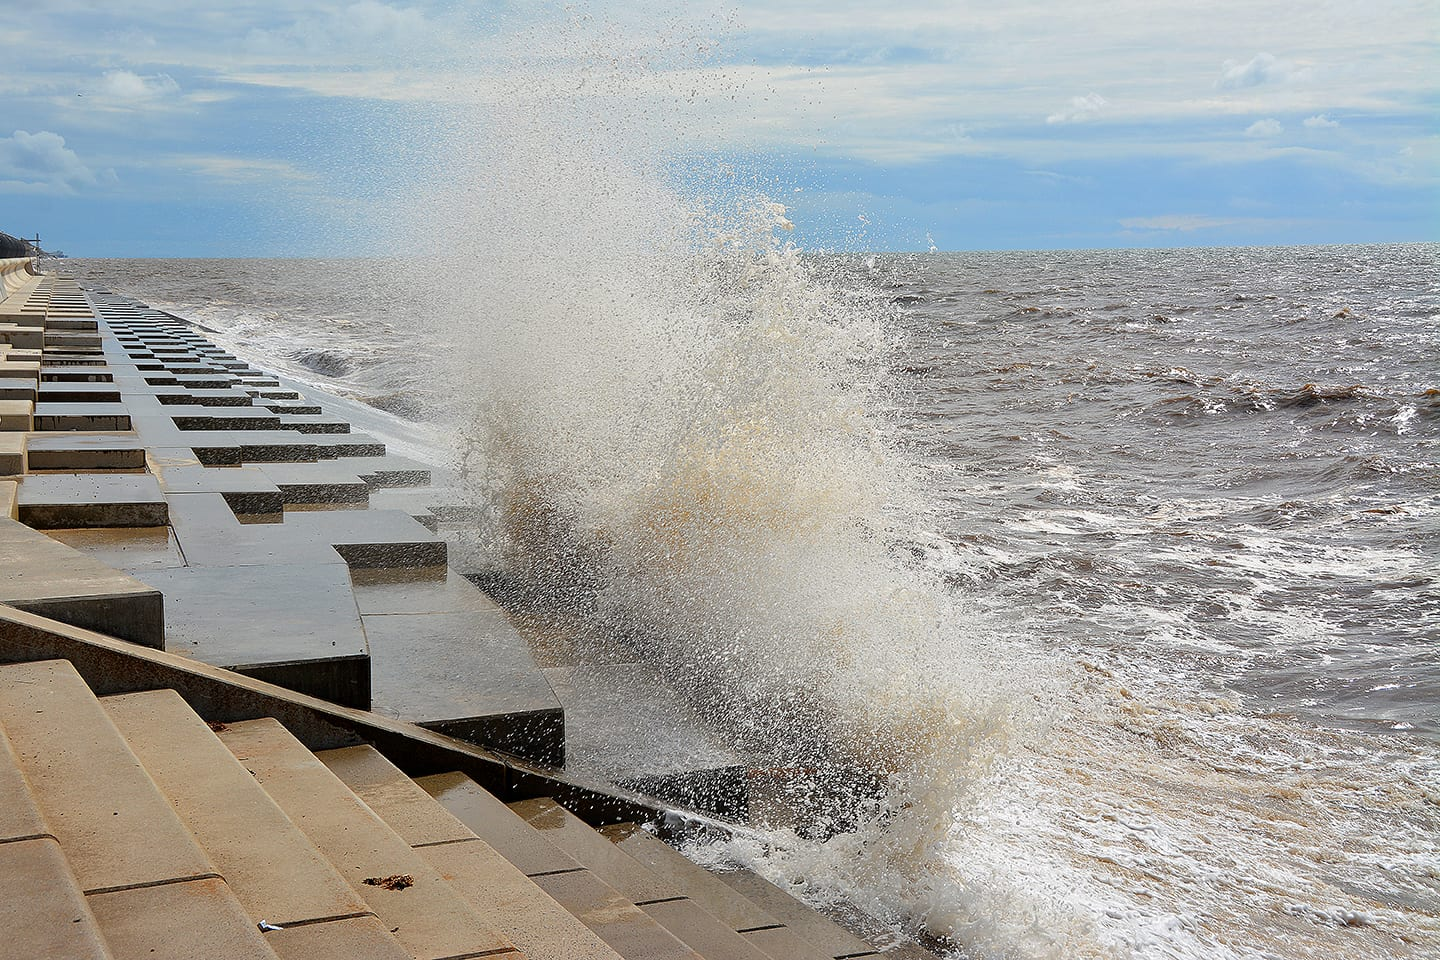 Spanish steps at Cleveleys seafront meet the sloping revetment and wave breaker units at Anchorsholme, Blackpool